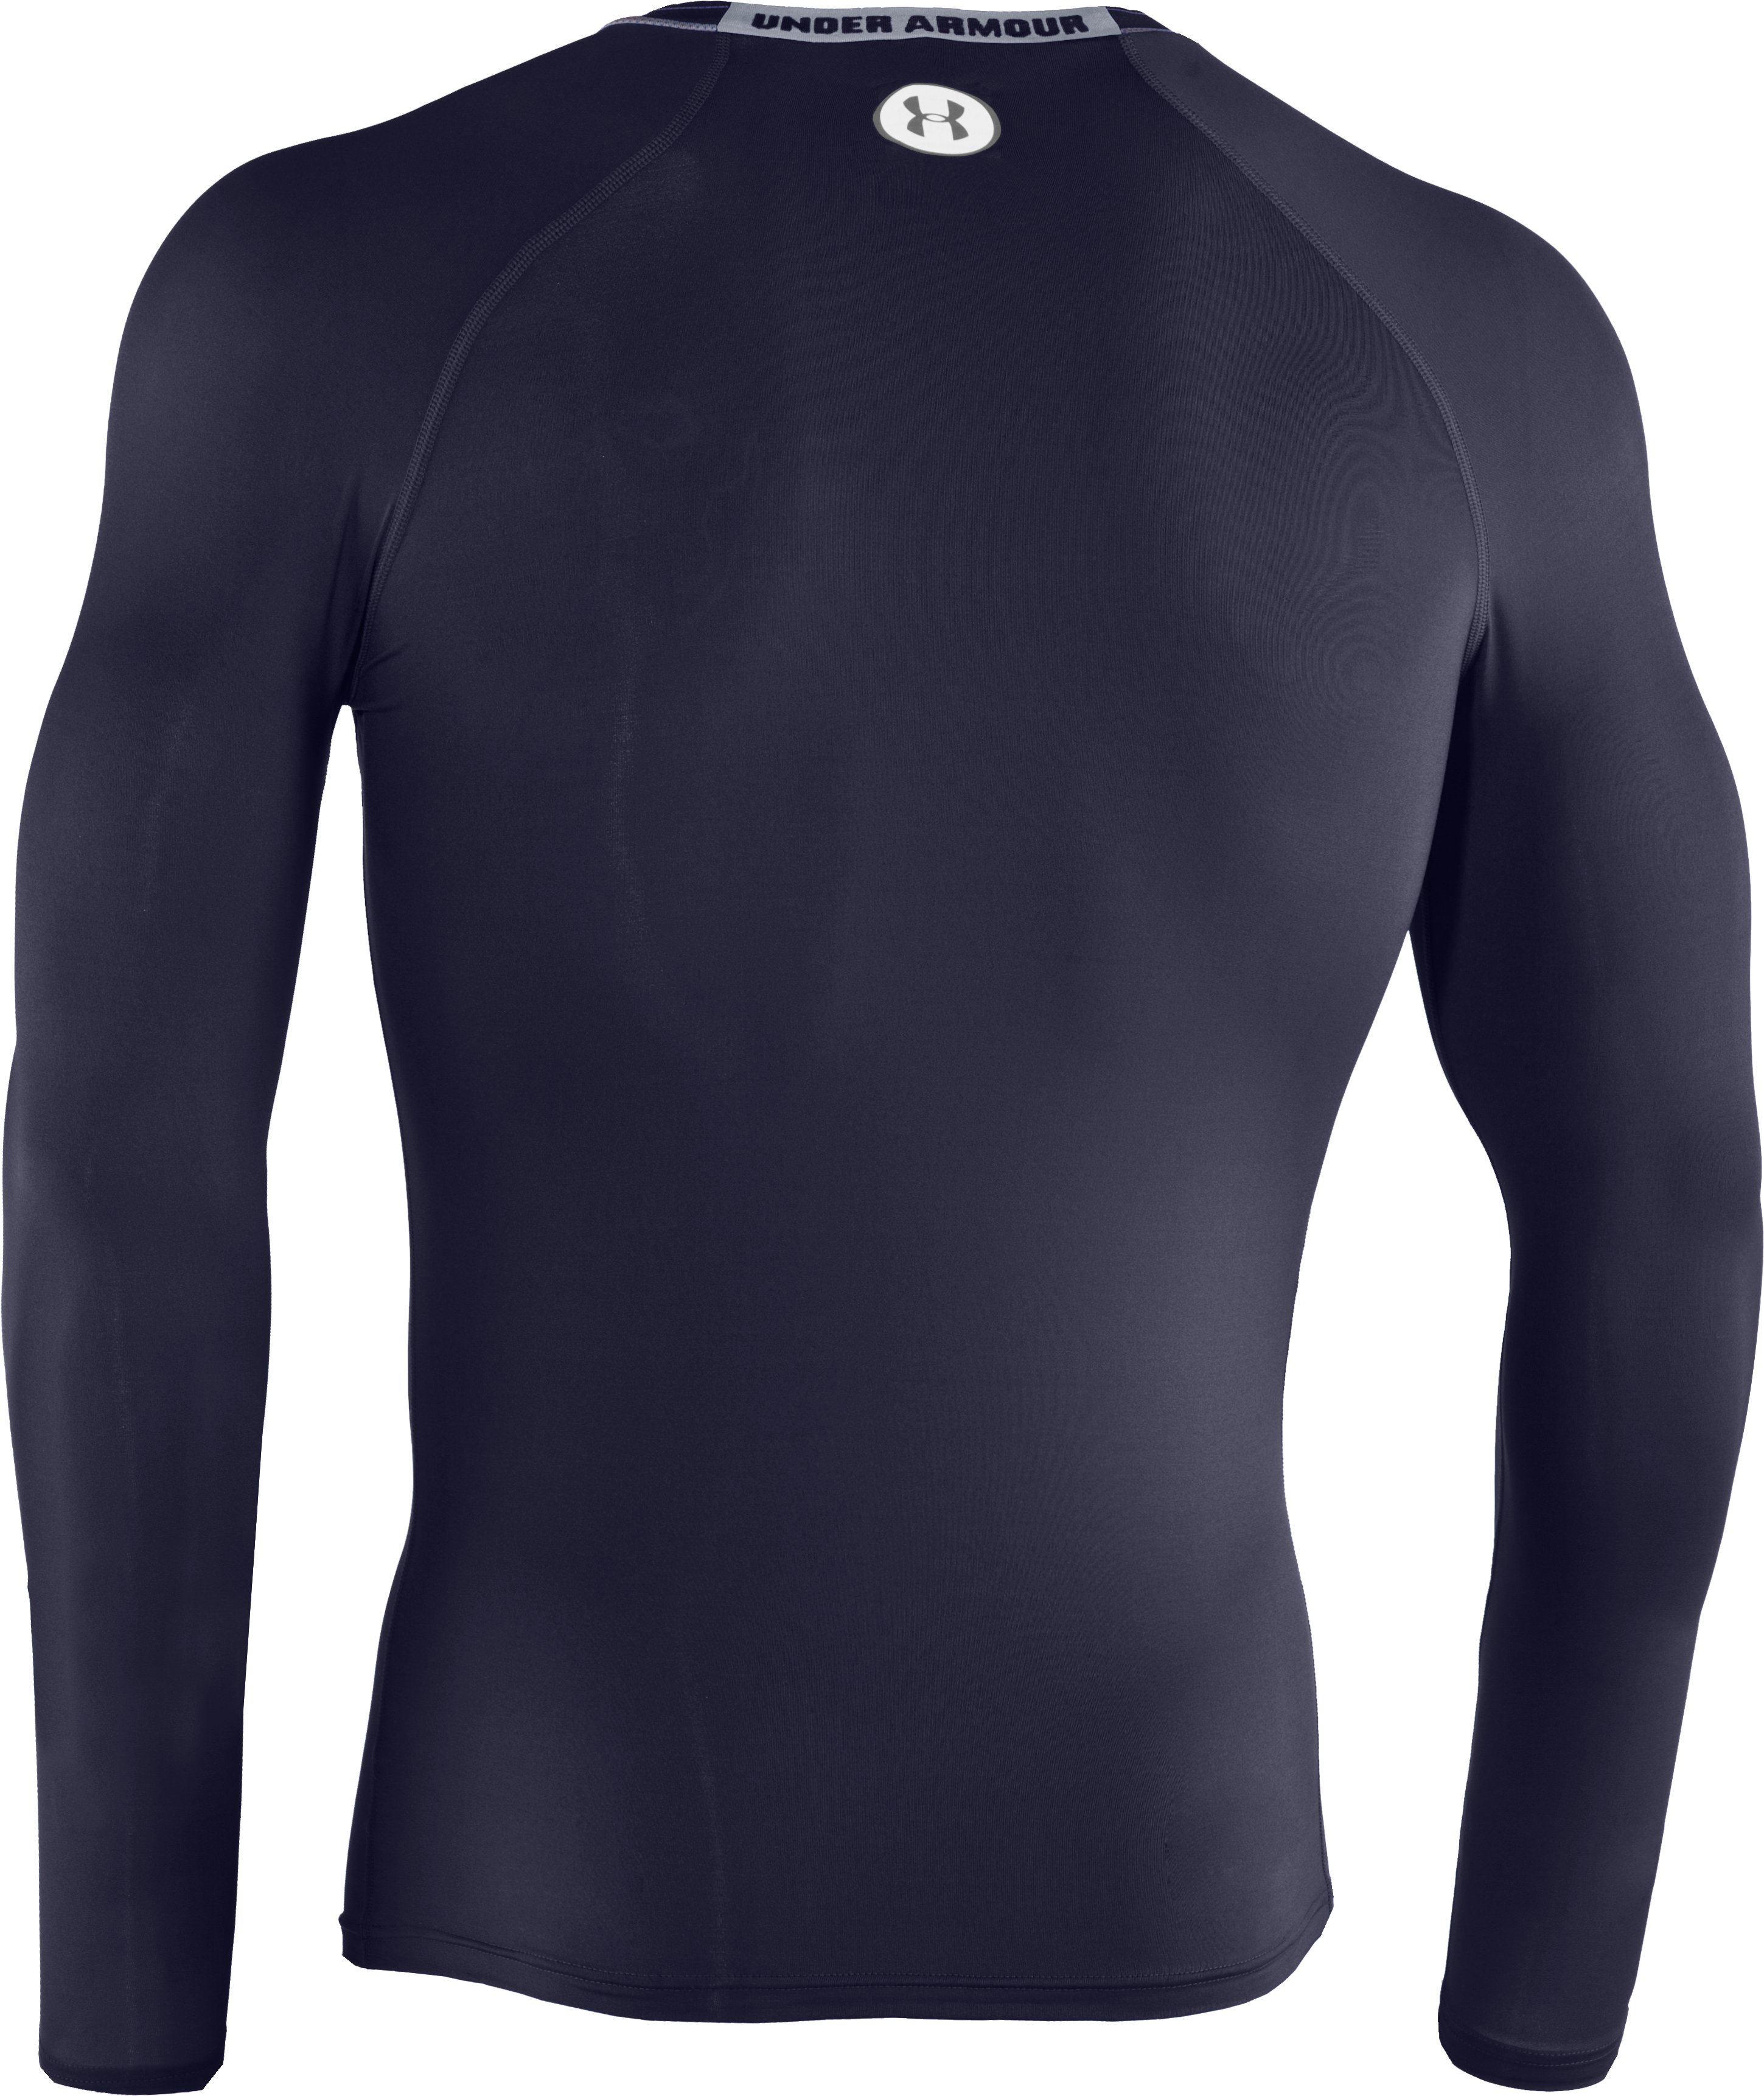 Men's HeatGear® Sonic Compression Long Sleeve, Midnight Navy